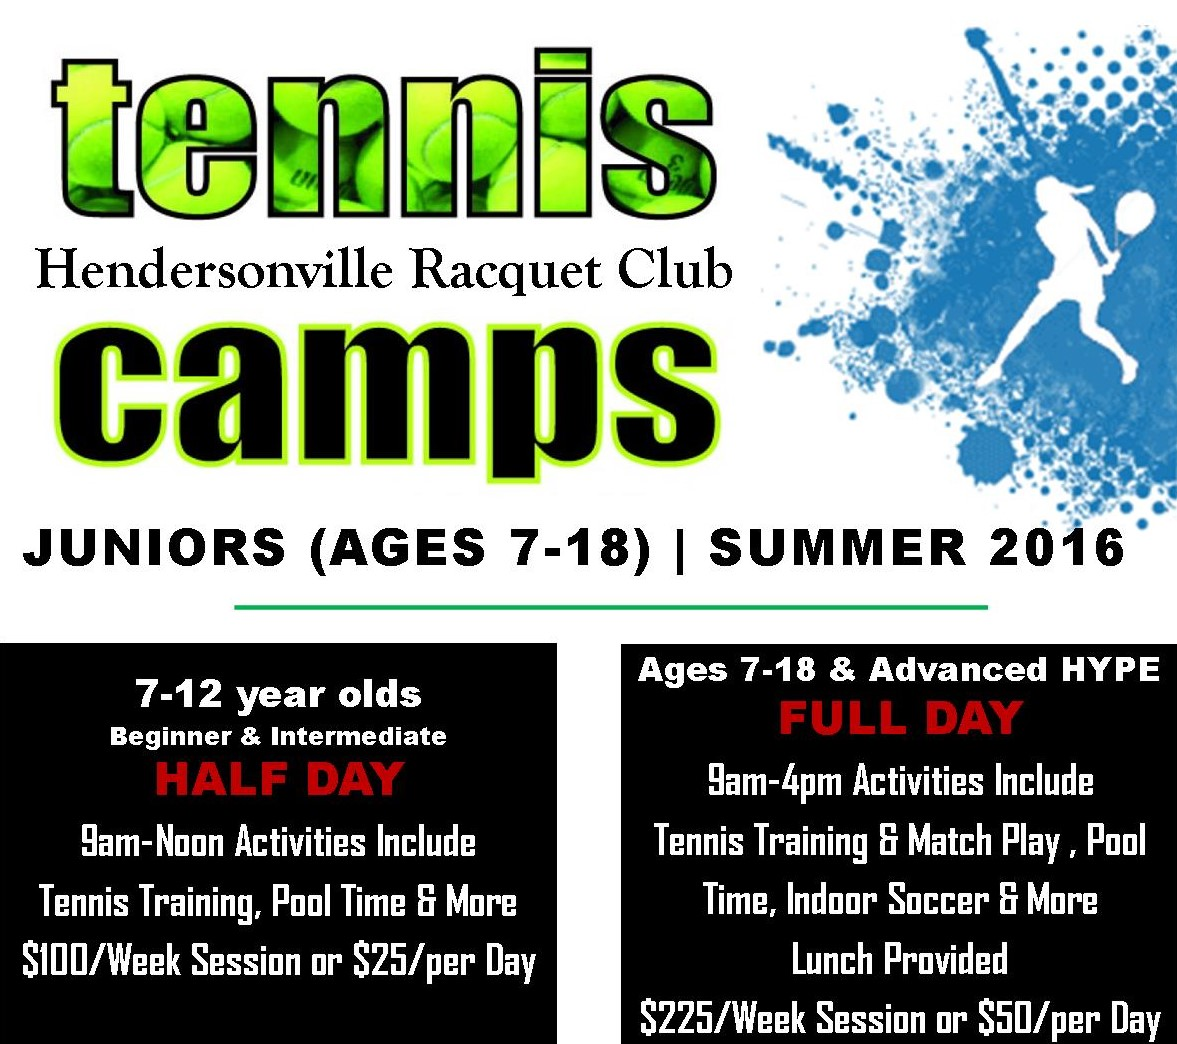 Tennis Youth Summer Camp 6/20-24, 6/27-7/1, 7/18-22, & 7/25-29